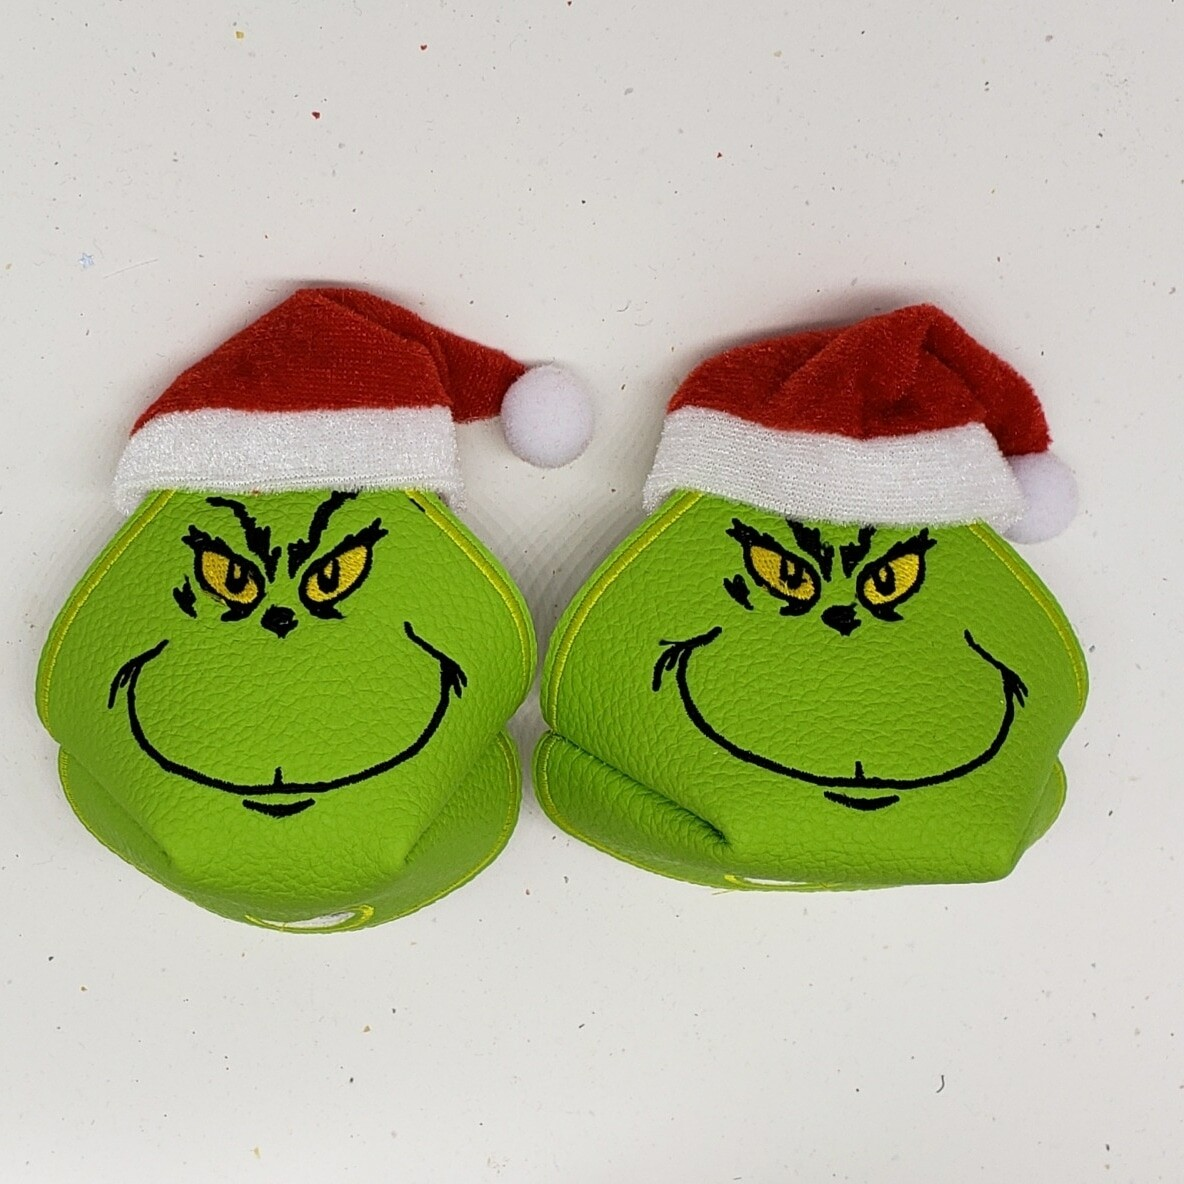 Grinch toe guards rts sm rts